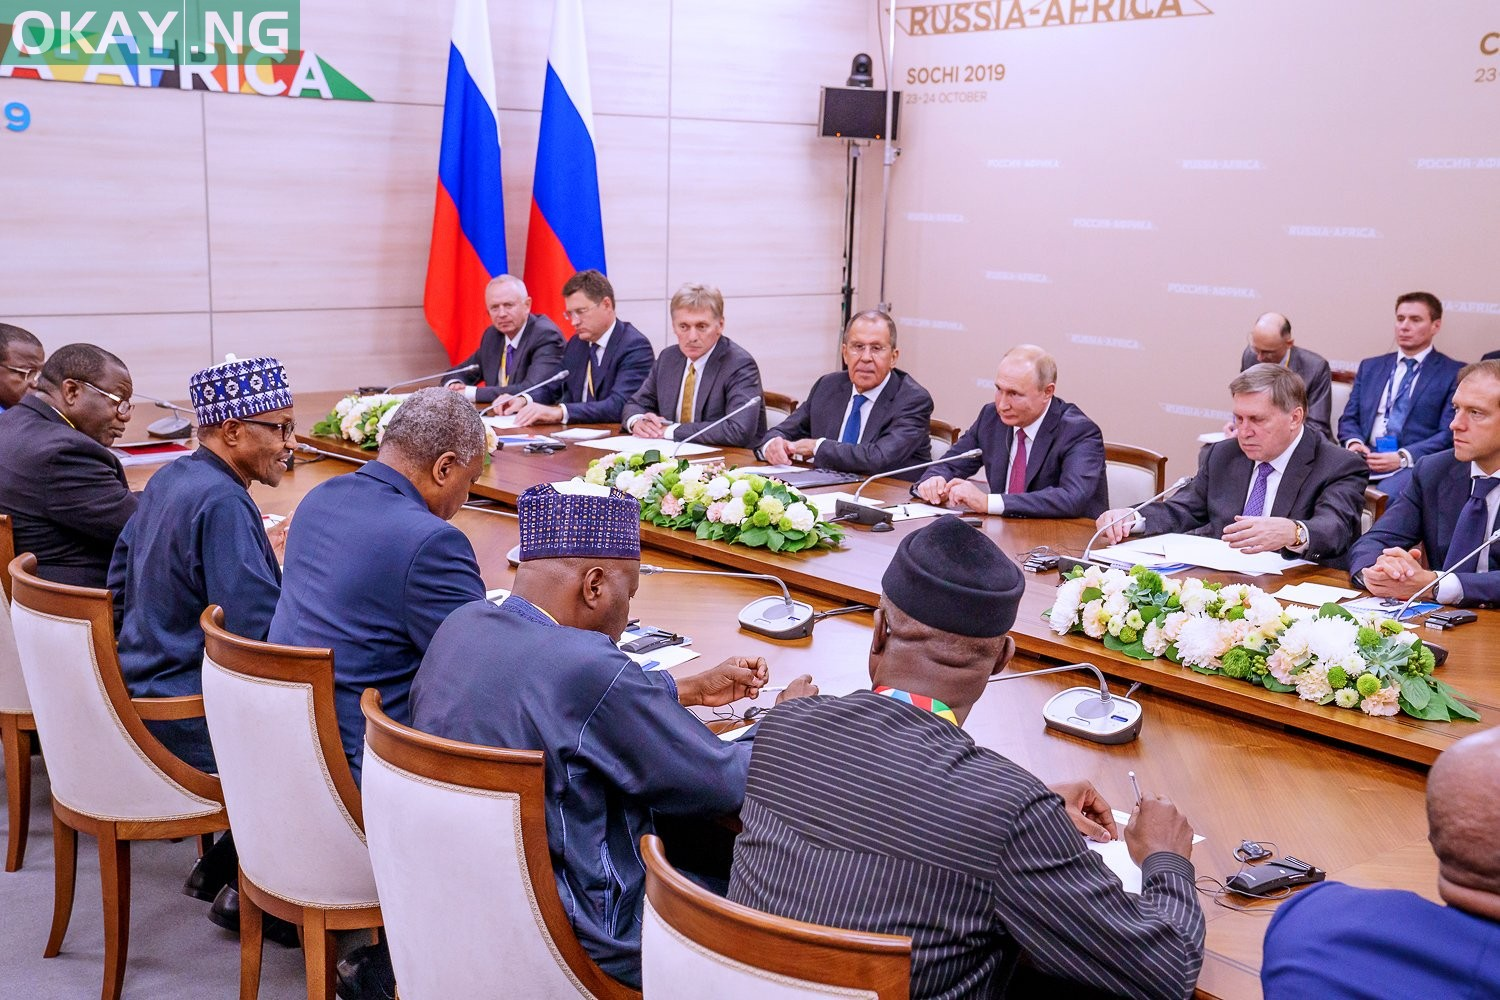 President Muhammadu Buhari during a bilateral meeting with President Vladimir Putin of Russia at the sidelines of the Russia-Africa Forum in Sochi